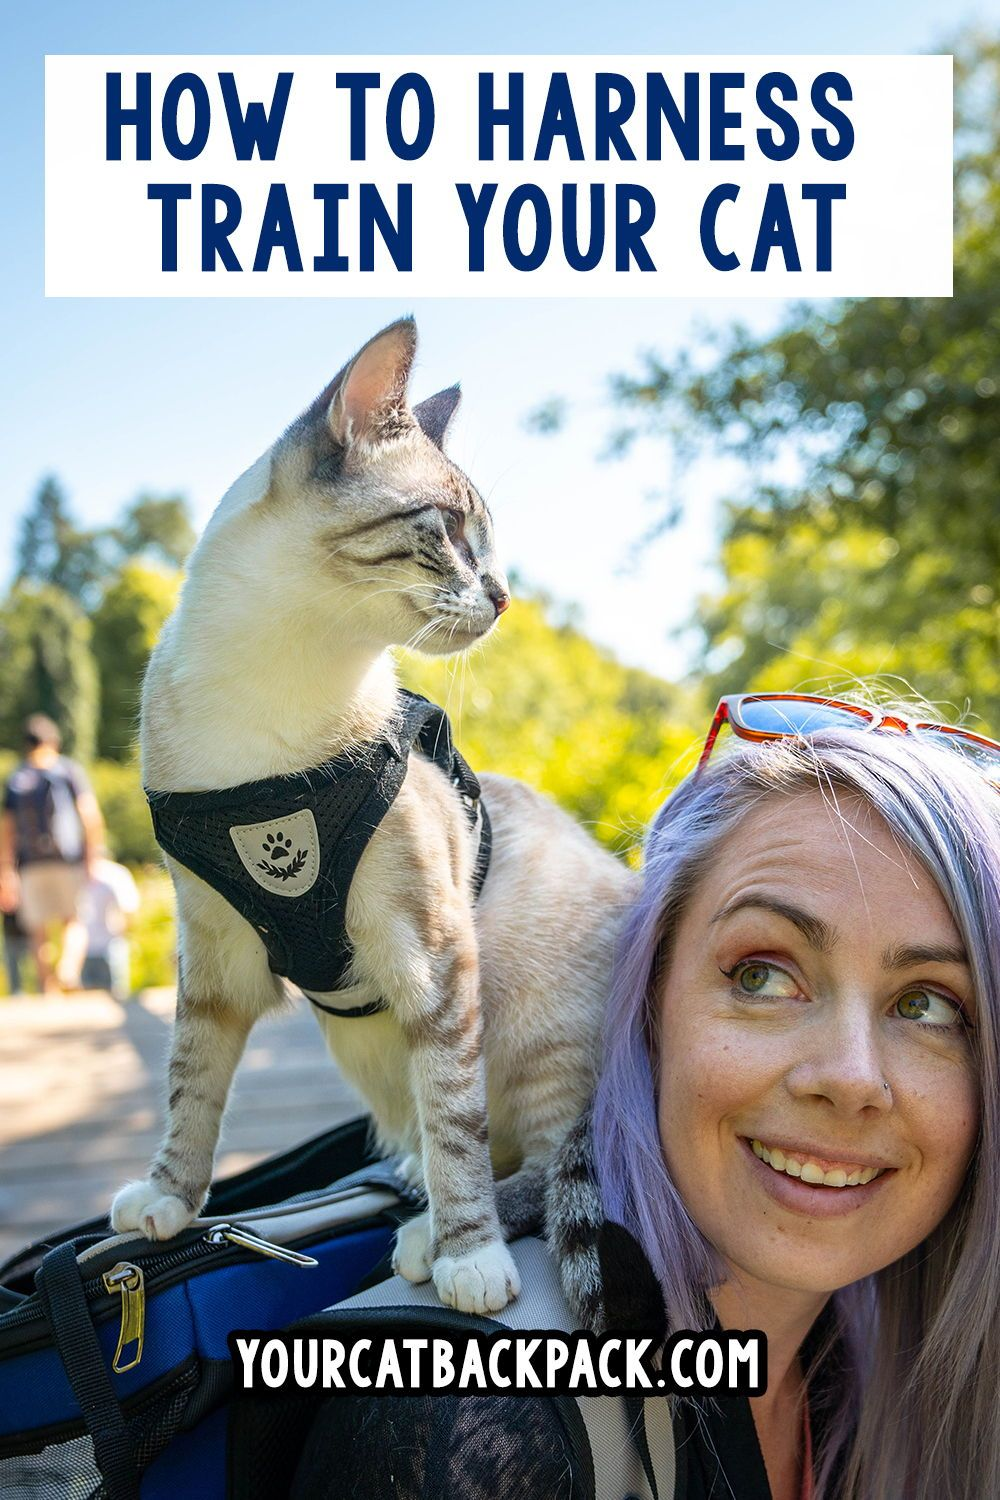 How To Walk Your Cat On A Leash 7 Easy Steps Fluffy Kitty Leash Training Your Cat To Walk On A Leash In 7 Simple Steps Guide Cat Leash Cat Training Cats